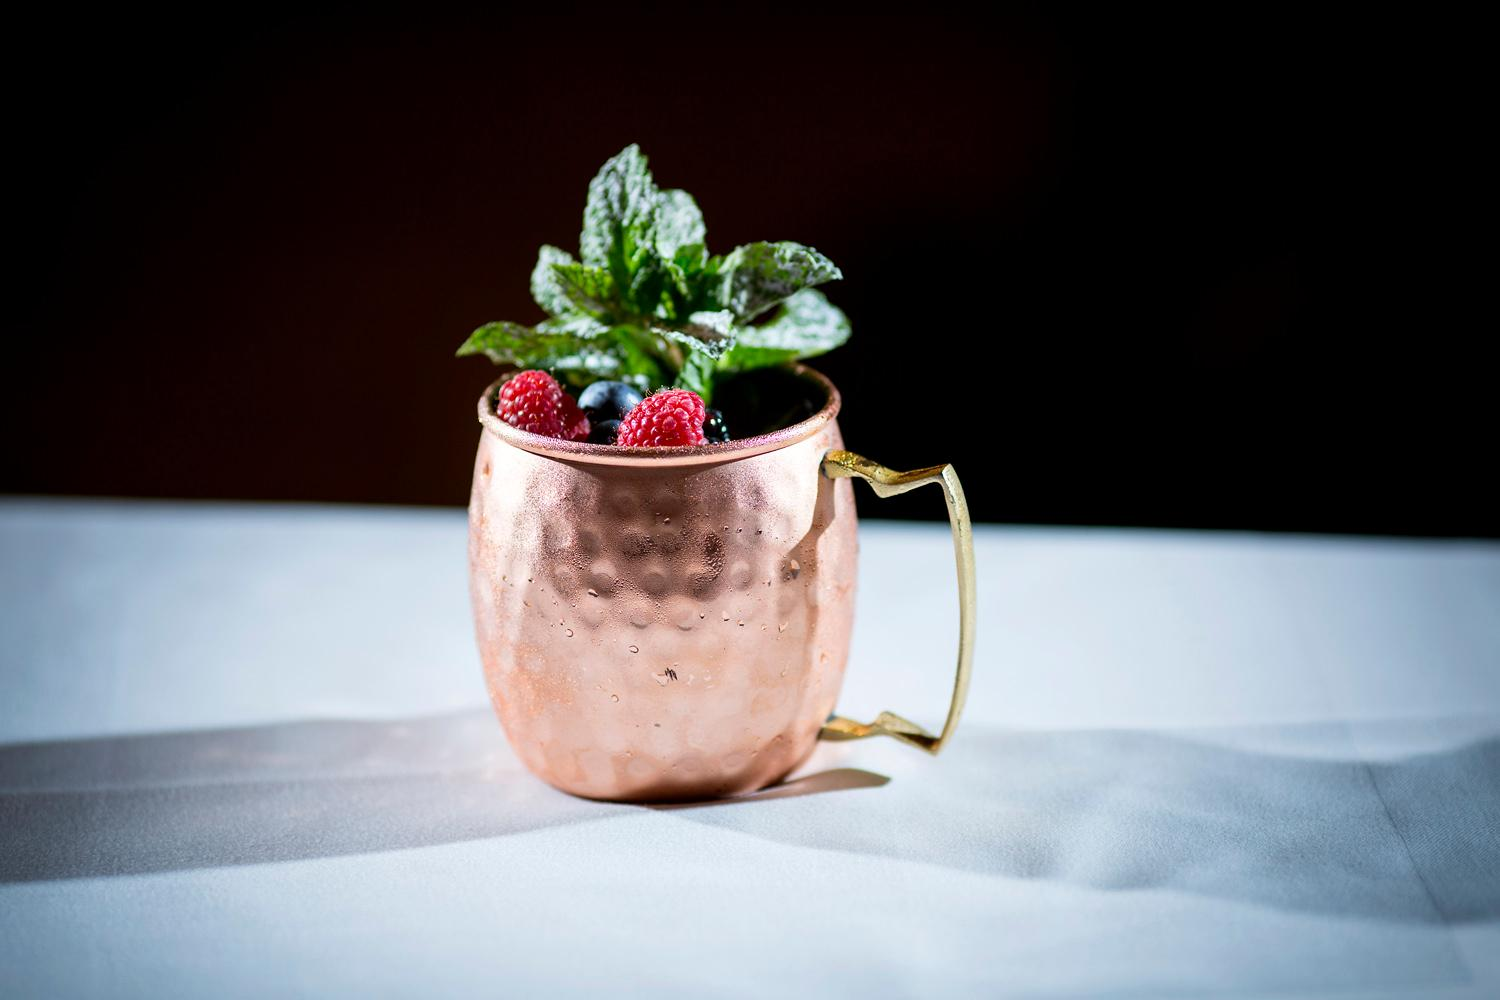 Bronze Twizzle - Makers Mark Bourbon, Aperol, guava juice and fresh squeezed grapefruit and lemon juice mixed with ginger beer and served in a copper mug and garnished with fresh mint and berries. The Fairmont Olympic Hotel put together a special cocktail menu with gold, silver and bronze themed cocktails for the 2018 Winter Olympics. The games will be shown on TV in the Terrace Lounge and guests can enjoy one of the themed cocktails from the special Winner Takes All cocktail menu and learn a bit more about the Olympics along the way. Fun fact: Did you know figure skating which debuted as a summer sport in the 1908 Olympics in London officially became a winter sport at the first ever winter games in the 1924 Olympics in Chamonix, France? (Sy Bean / Seattle Refined)